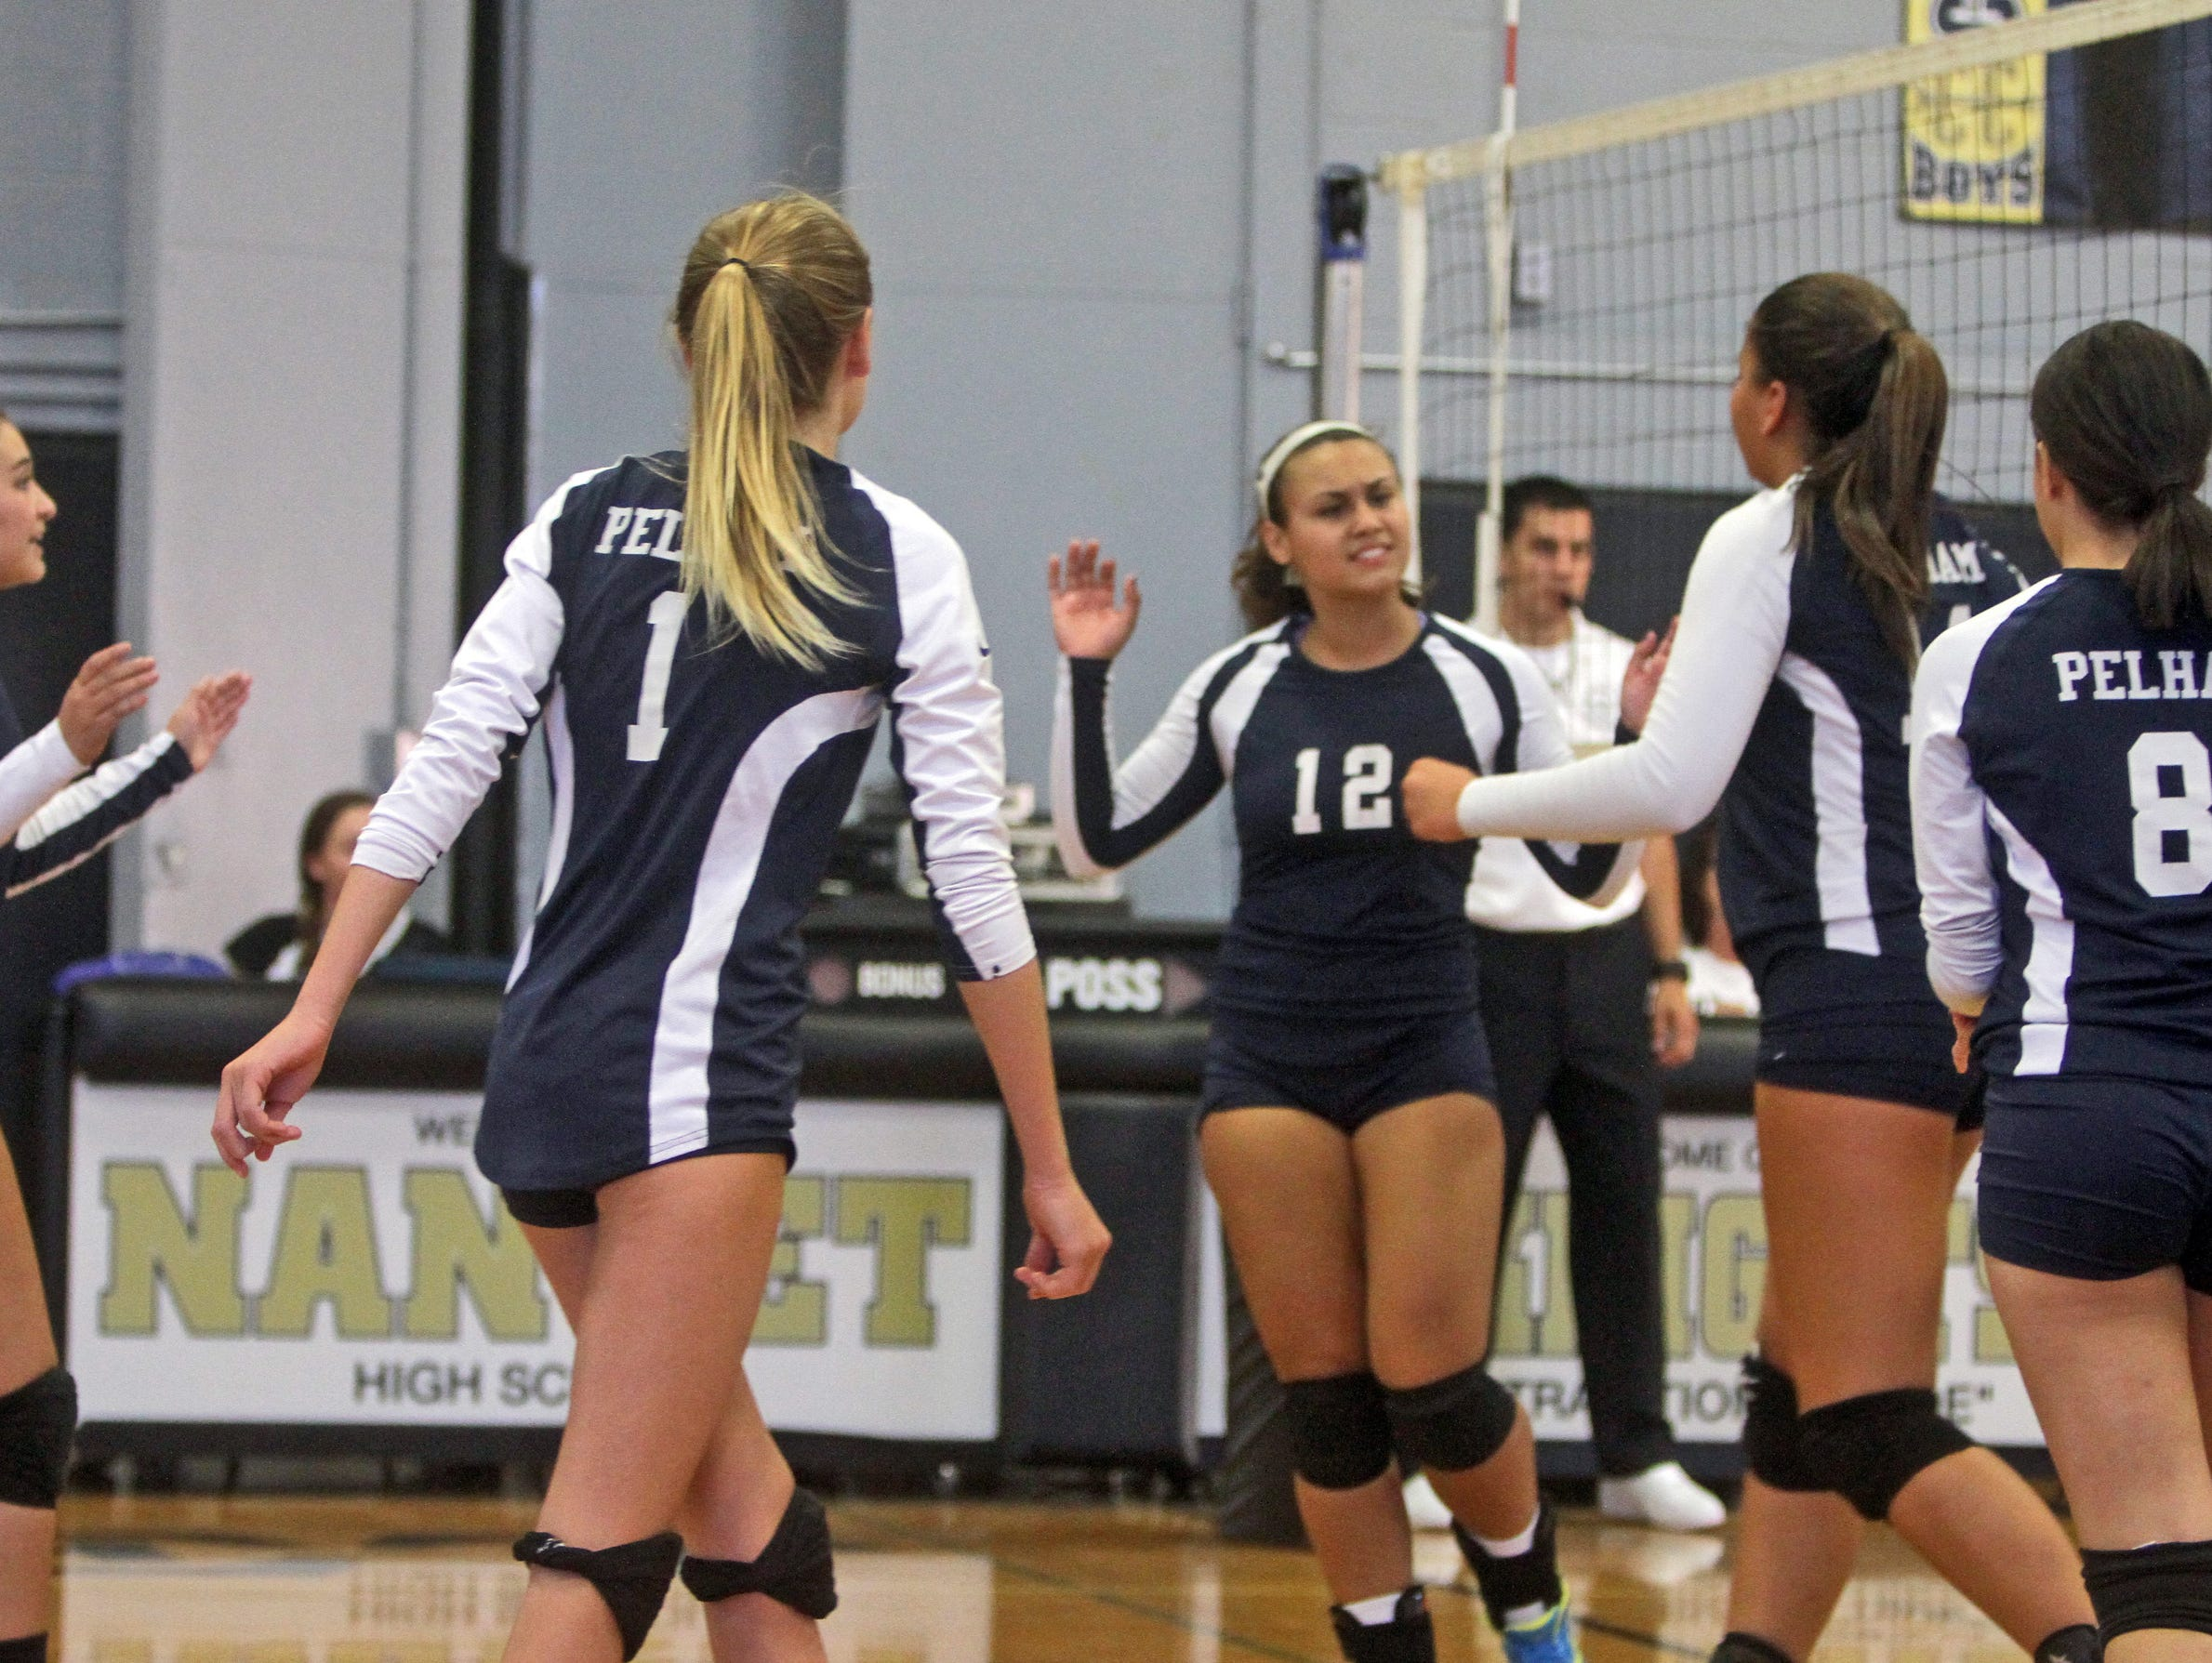 Pelham defeated Nanuet in three games, 25-18, 25-13, and 25-13 in a varsity volleyball match at Nanuet High School Sept. 24, 2015.